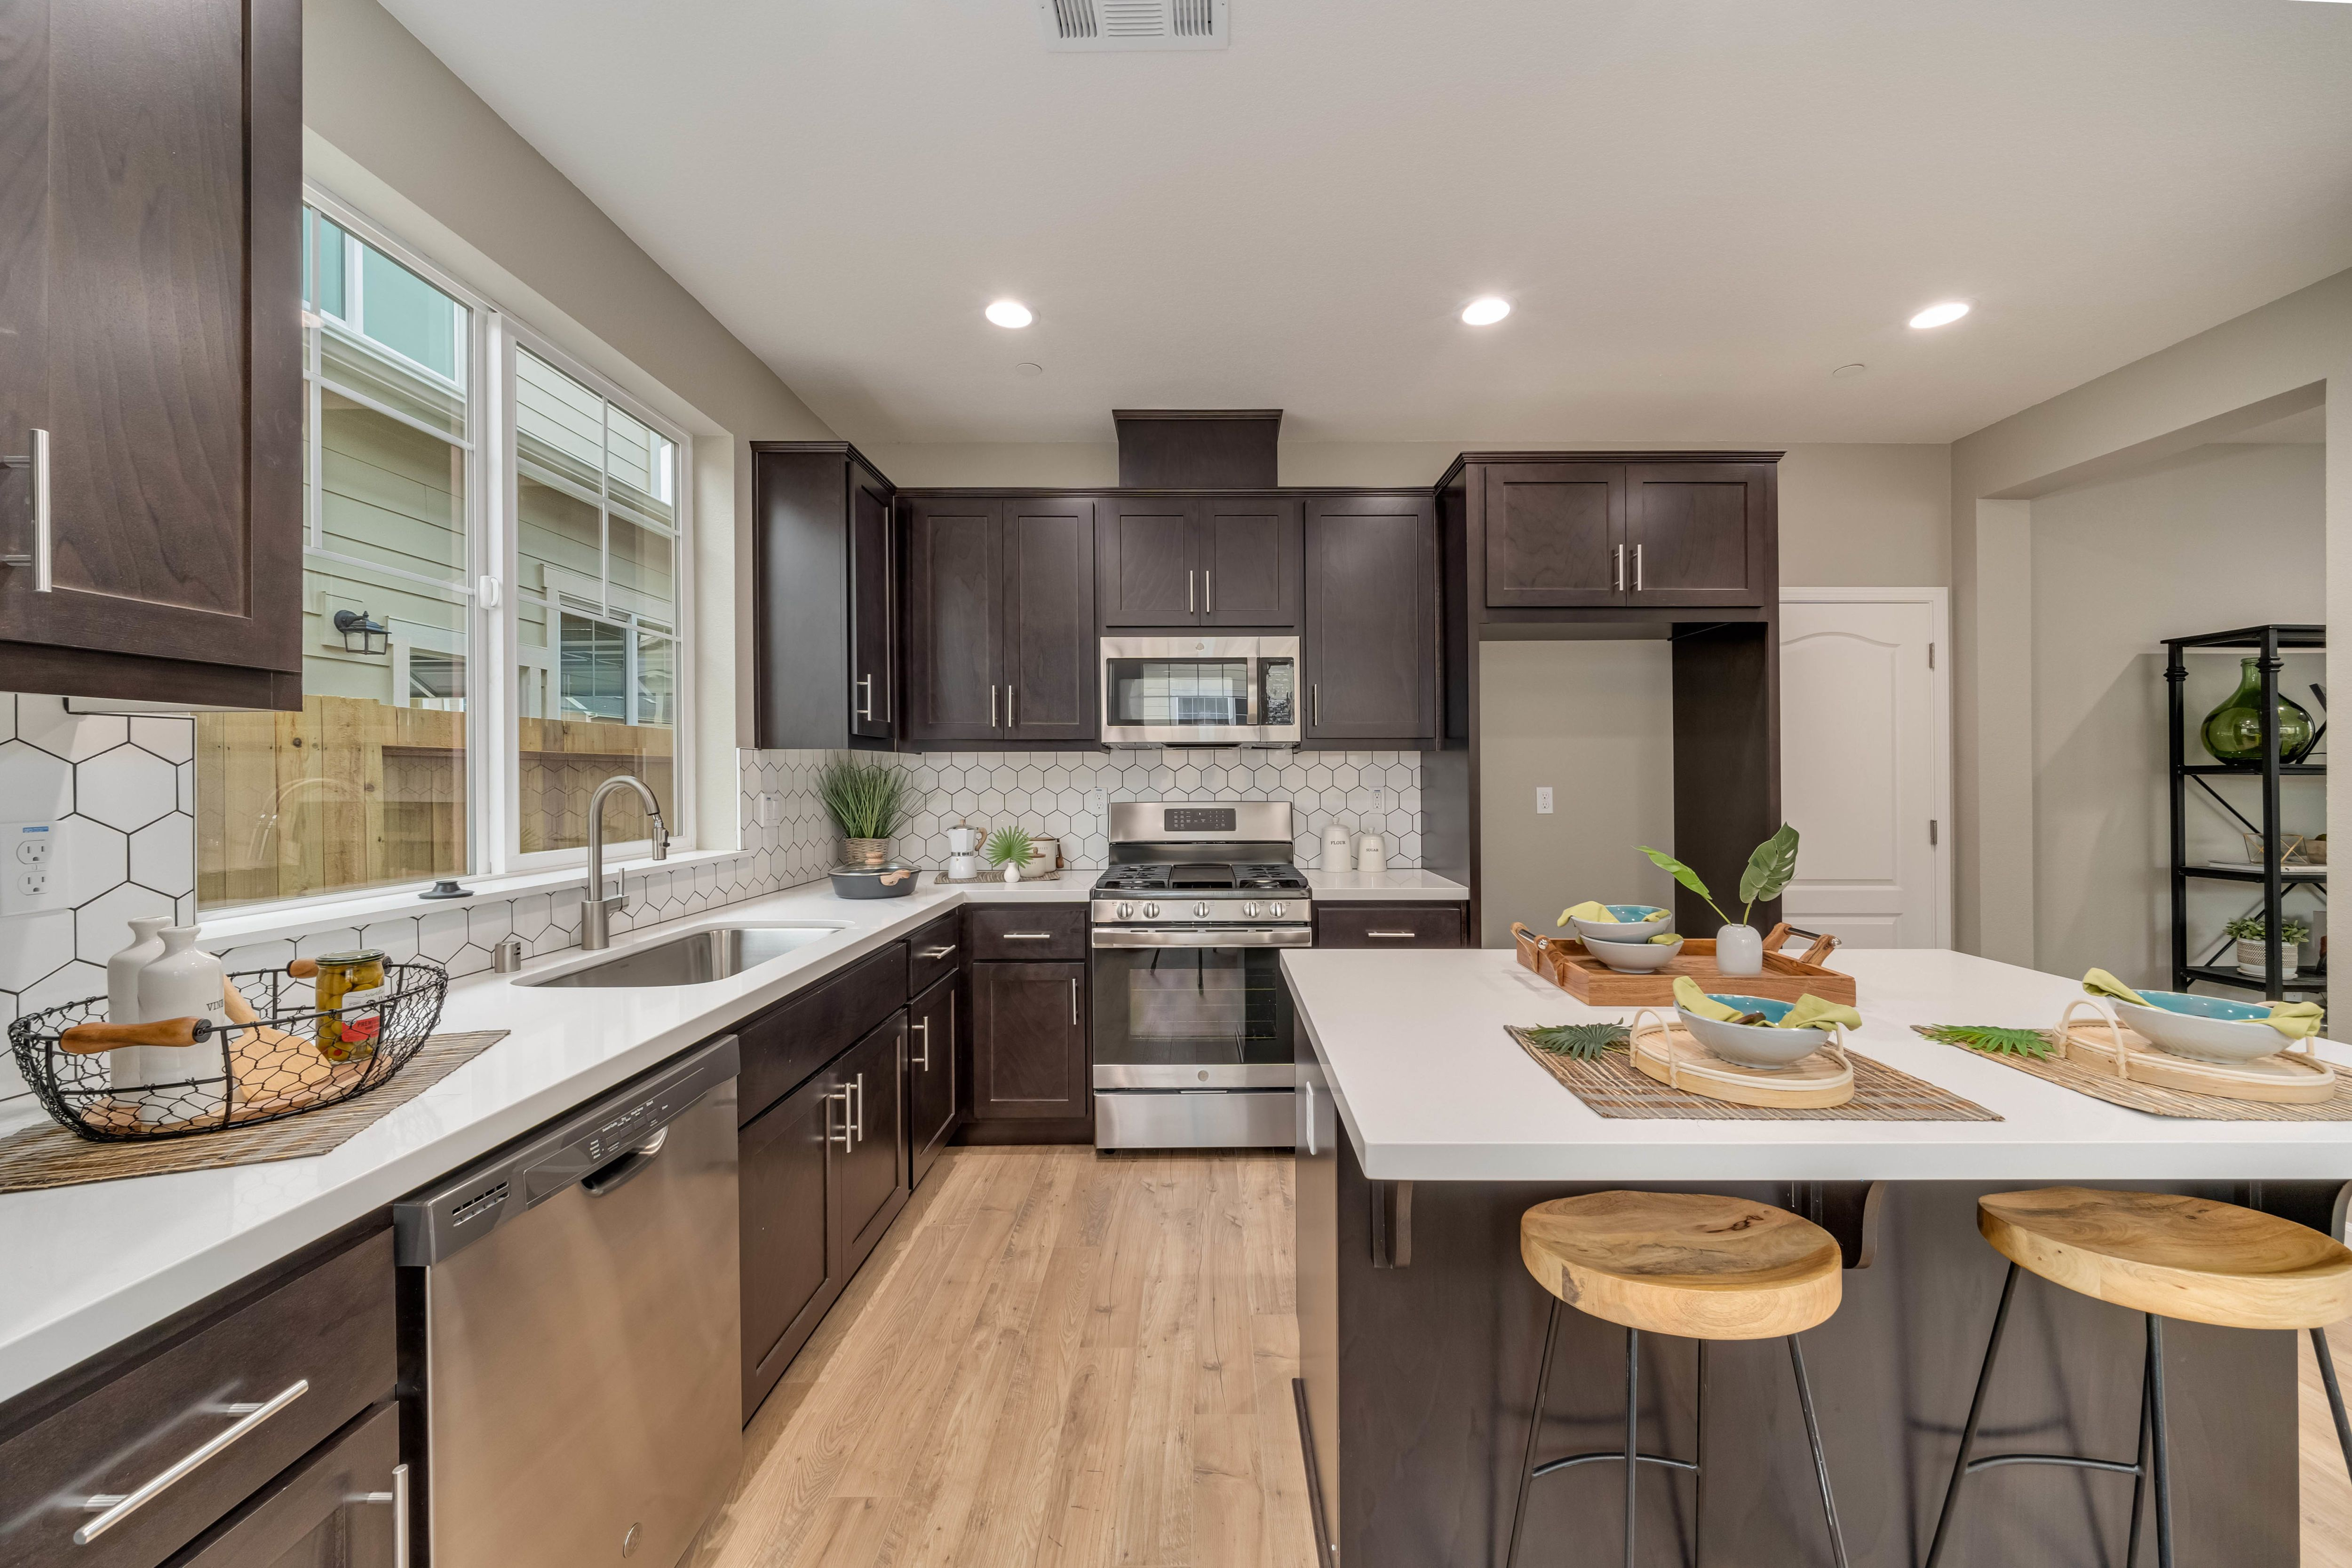 Kitchen featured in the Plan 5E By The Gardens in Santa Rosa, CA